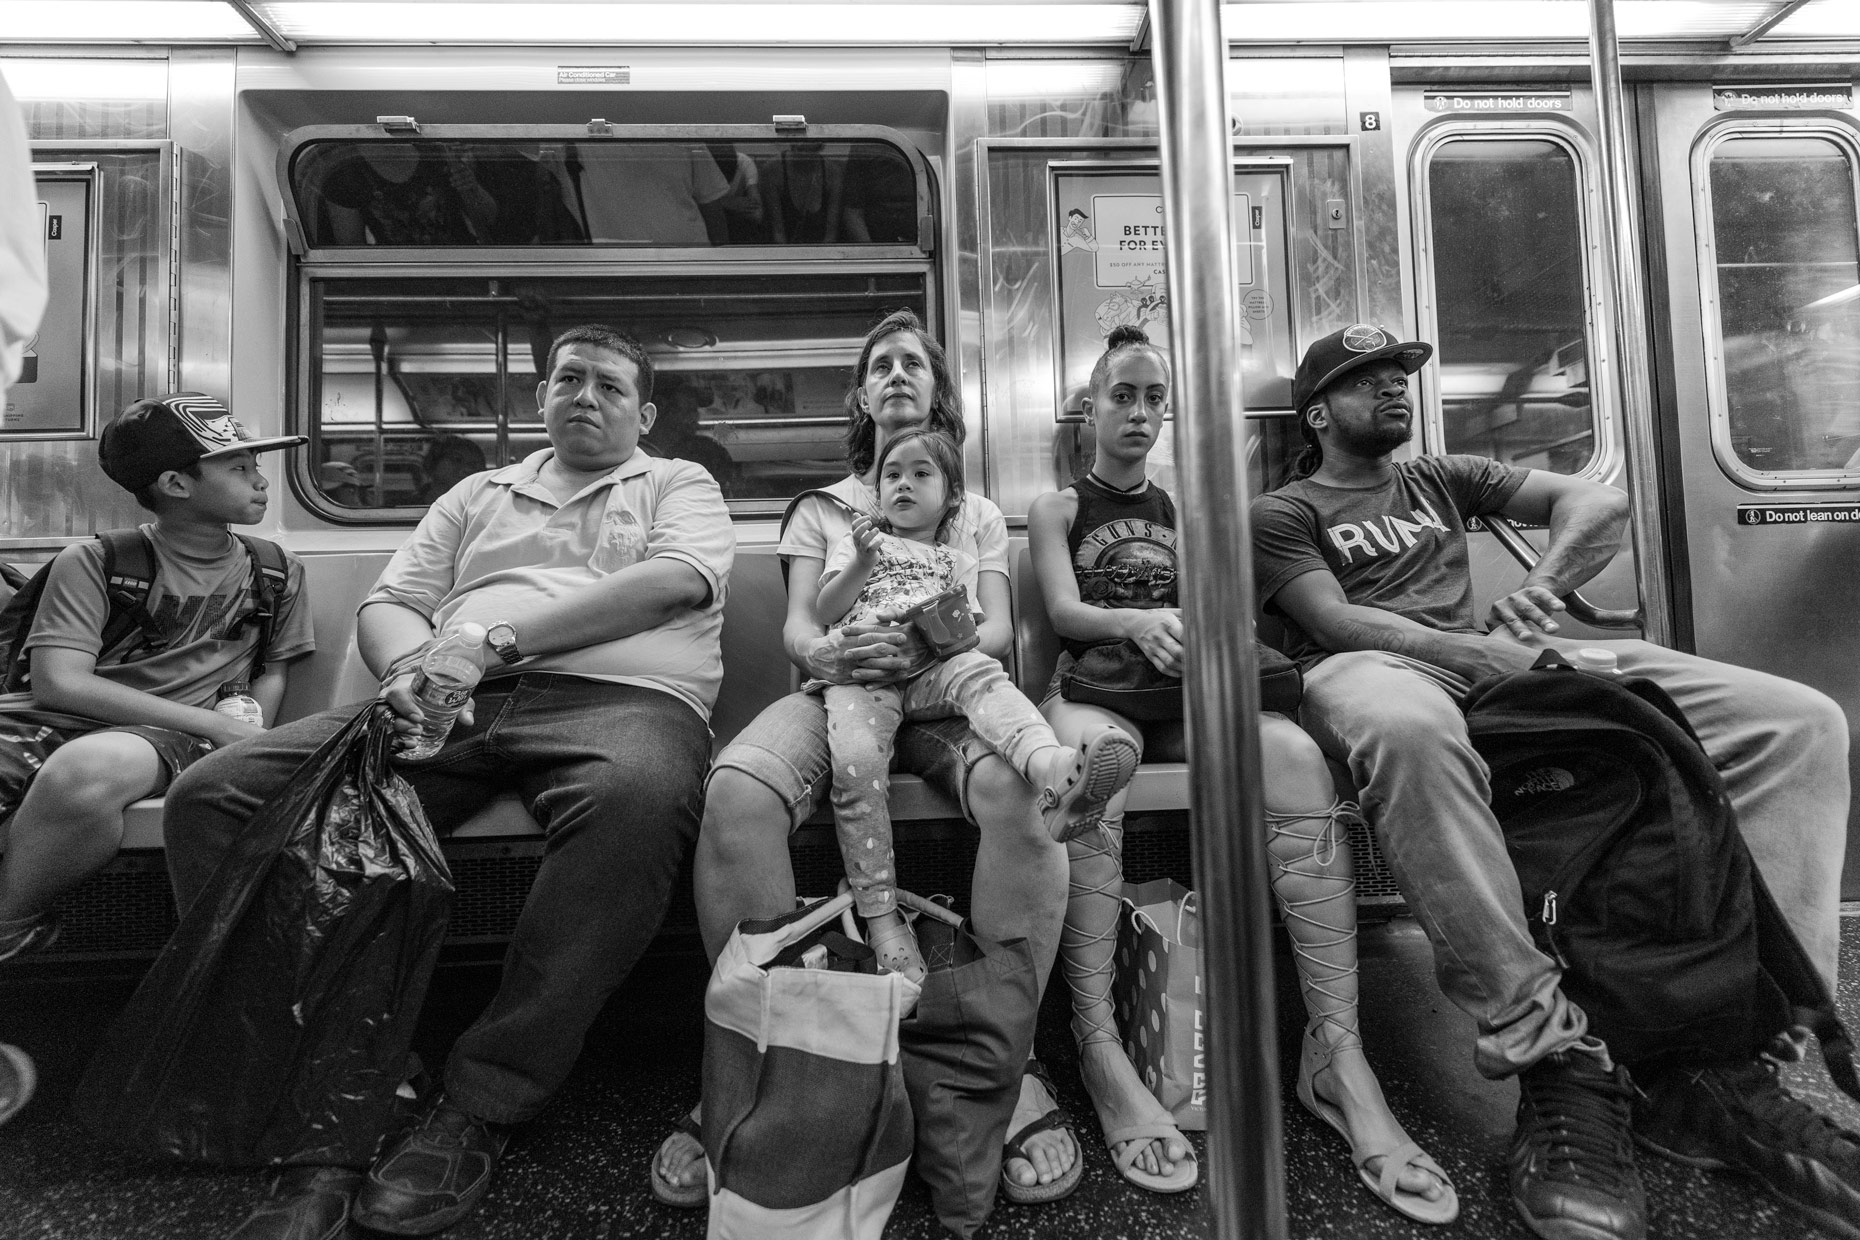 New York City street photography by Kevin Brown